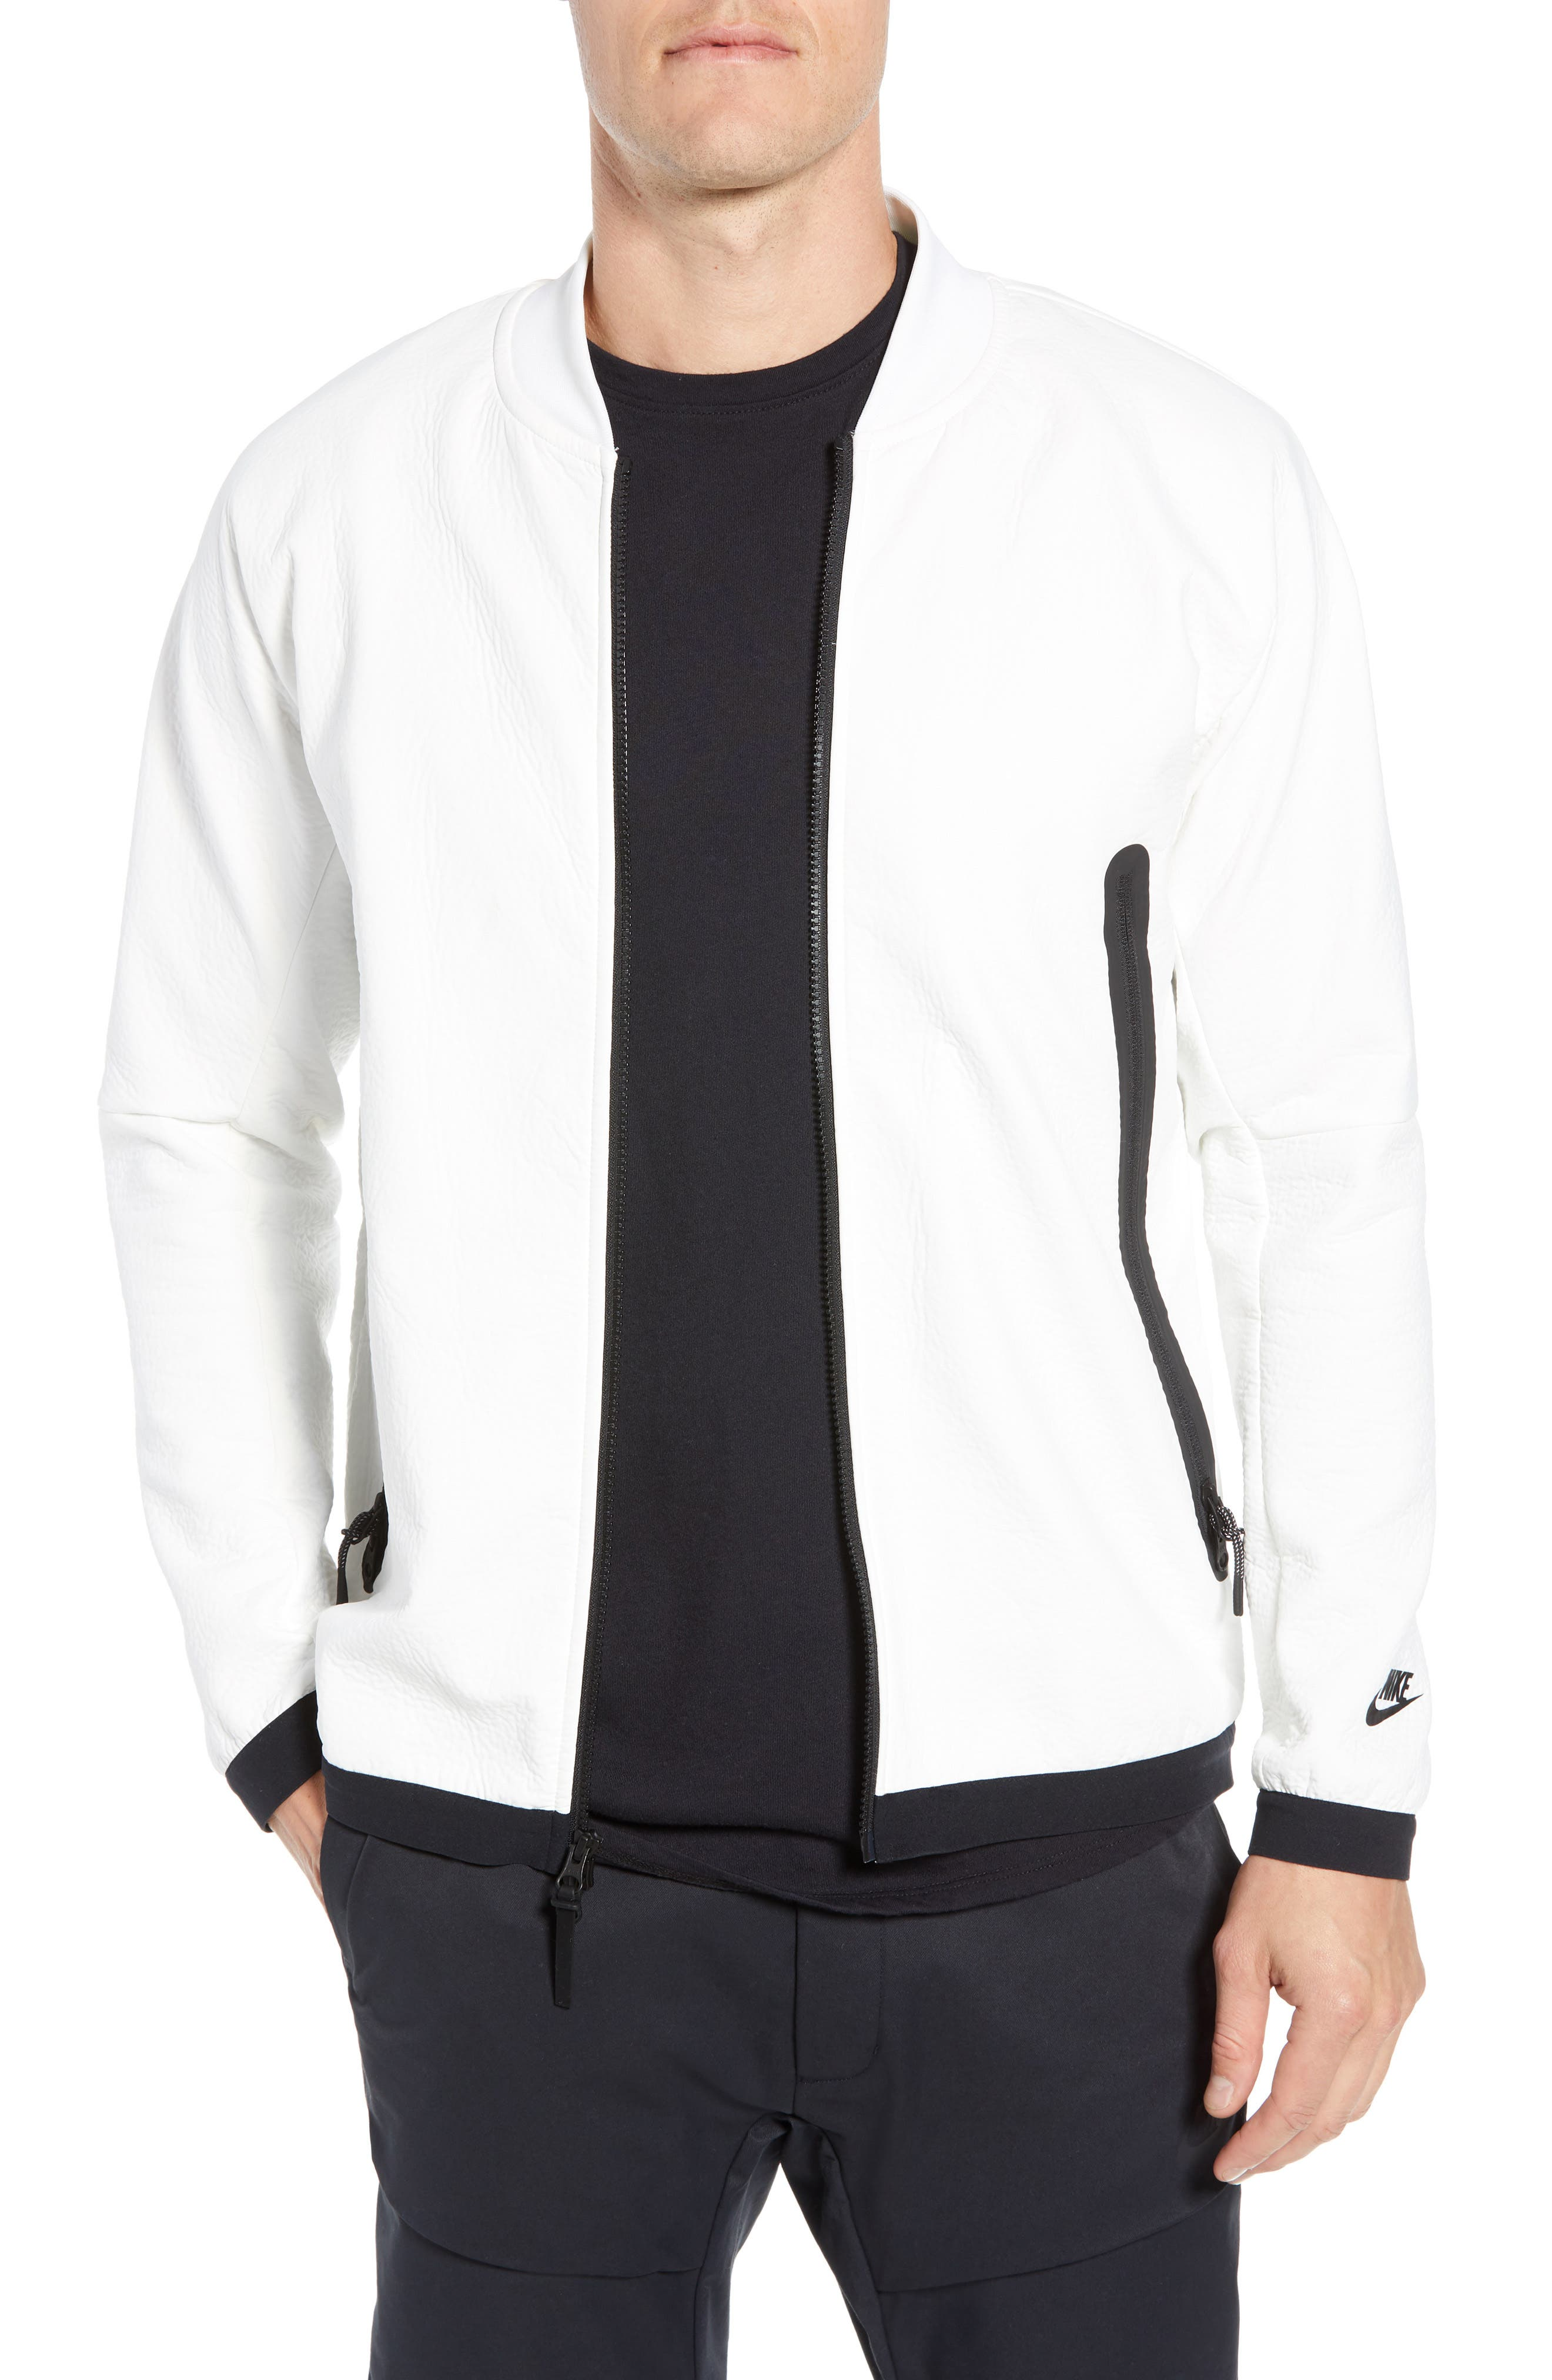 NSW Tech Track Jacket,                         Main,                         color, 121